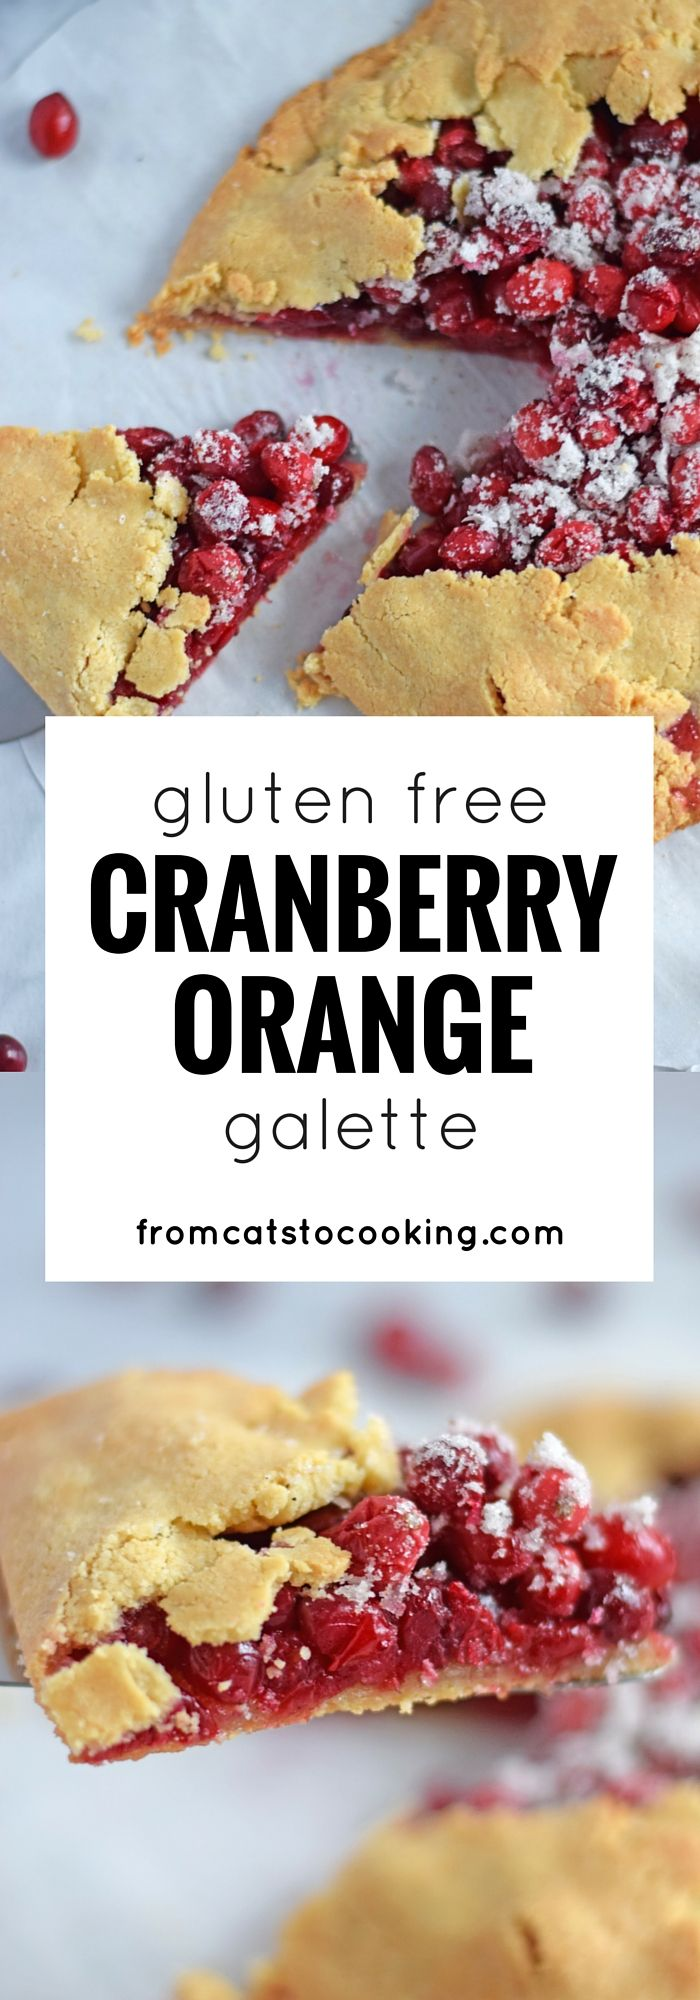 Orange Galette - Made with a gluten free crust, this cranberry orange ...